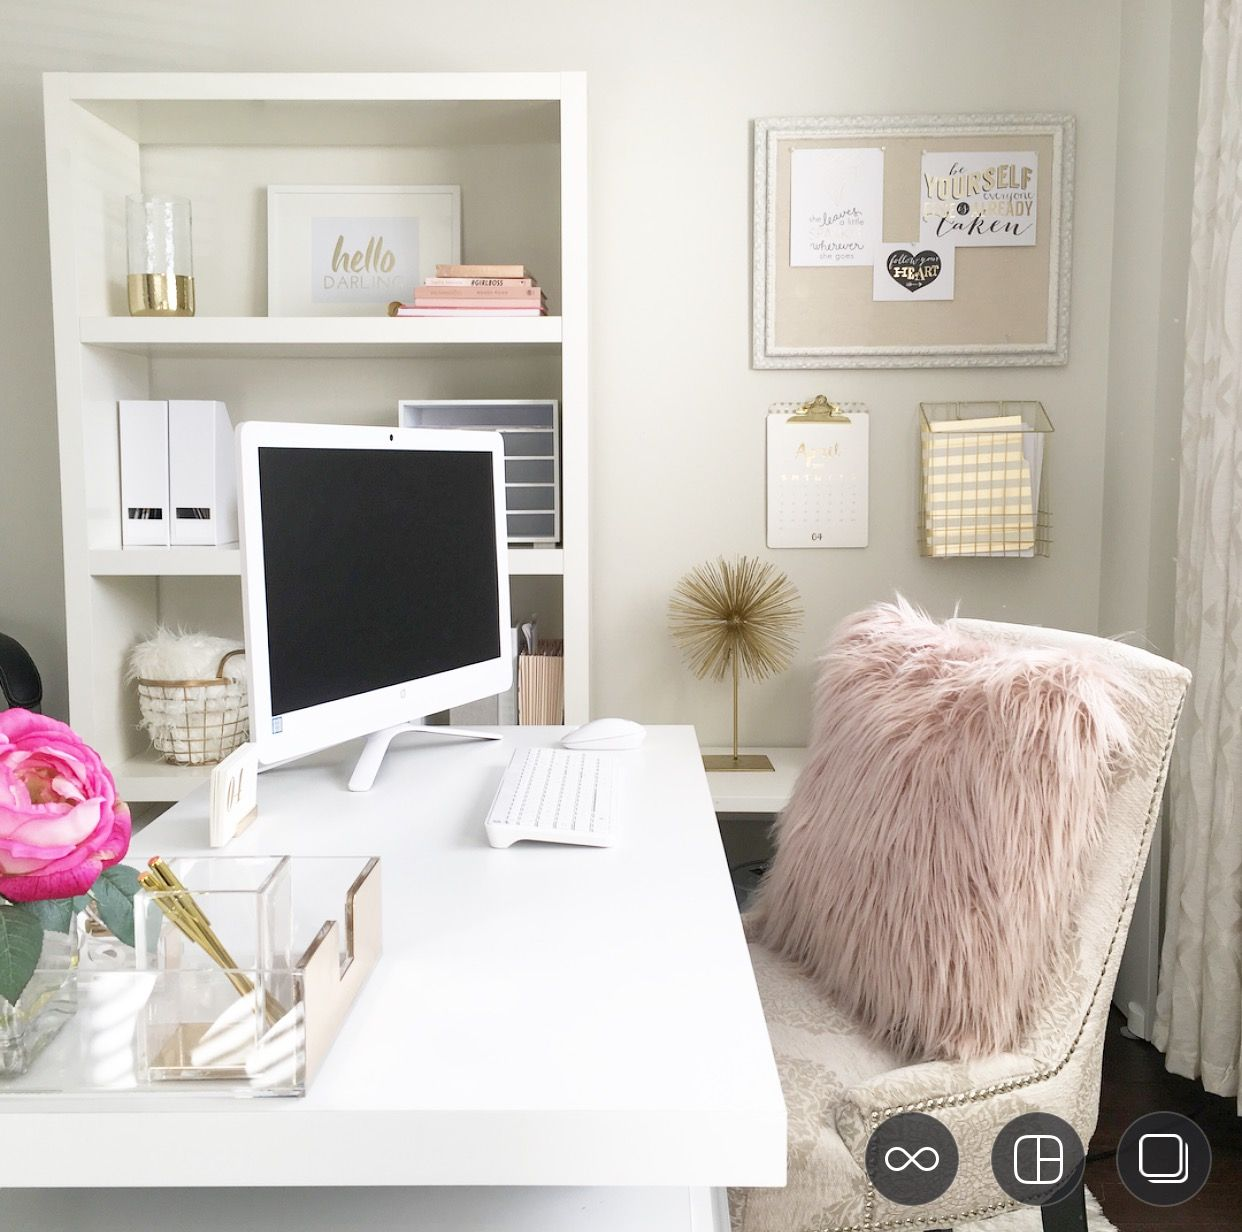 The 18 Best Home Office Design Ideas With Photos: Every Female Creative Deserves A Beautiful And Inspiring